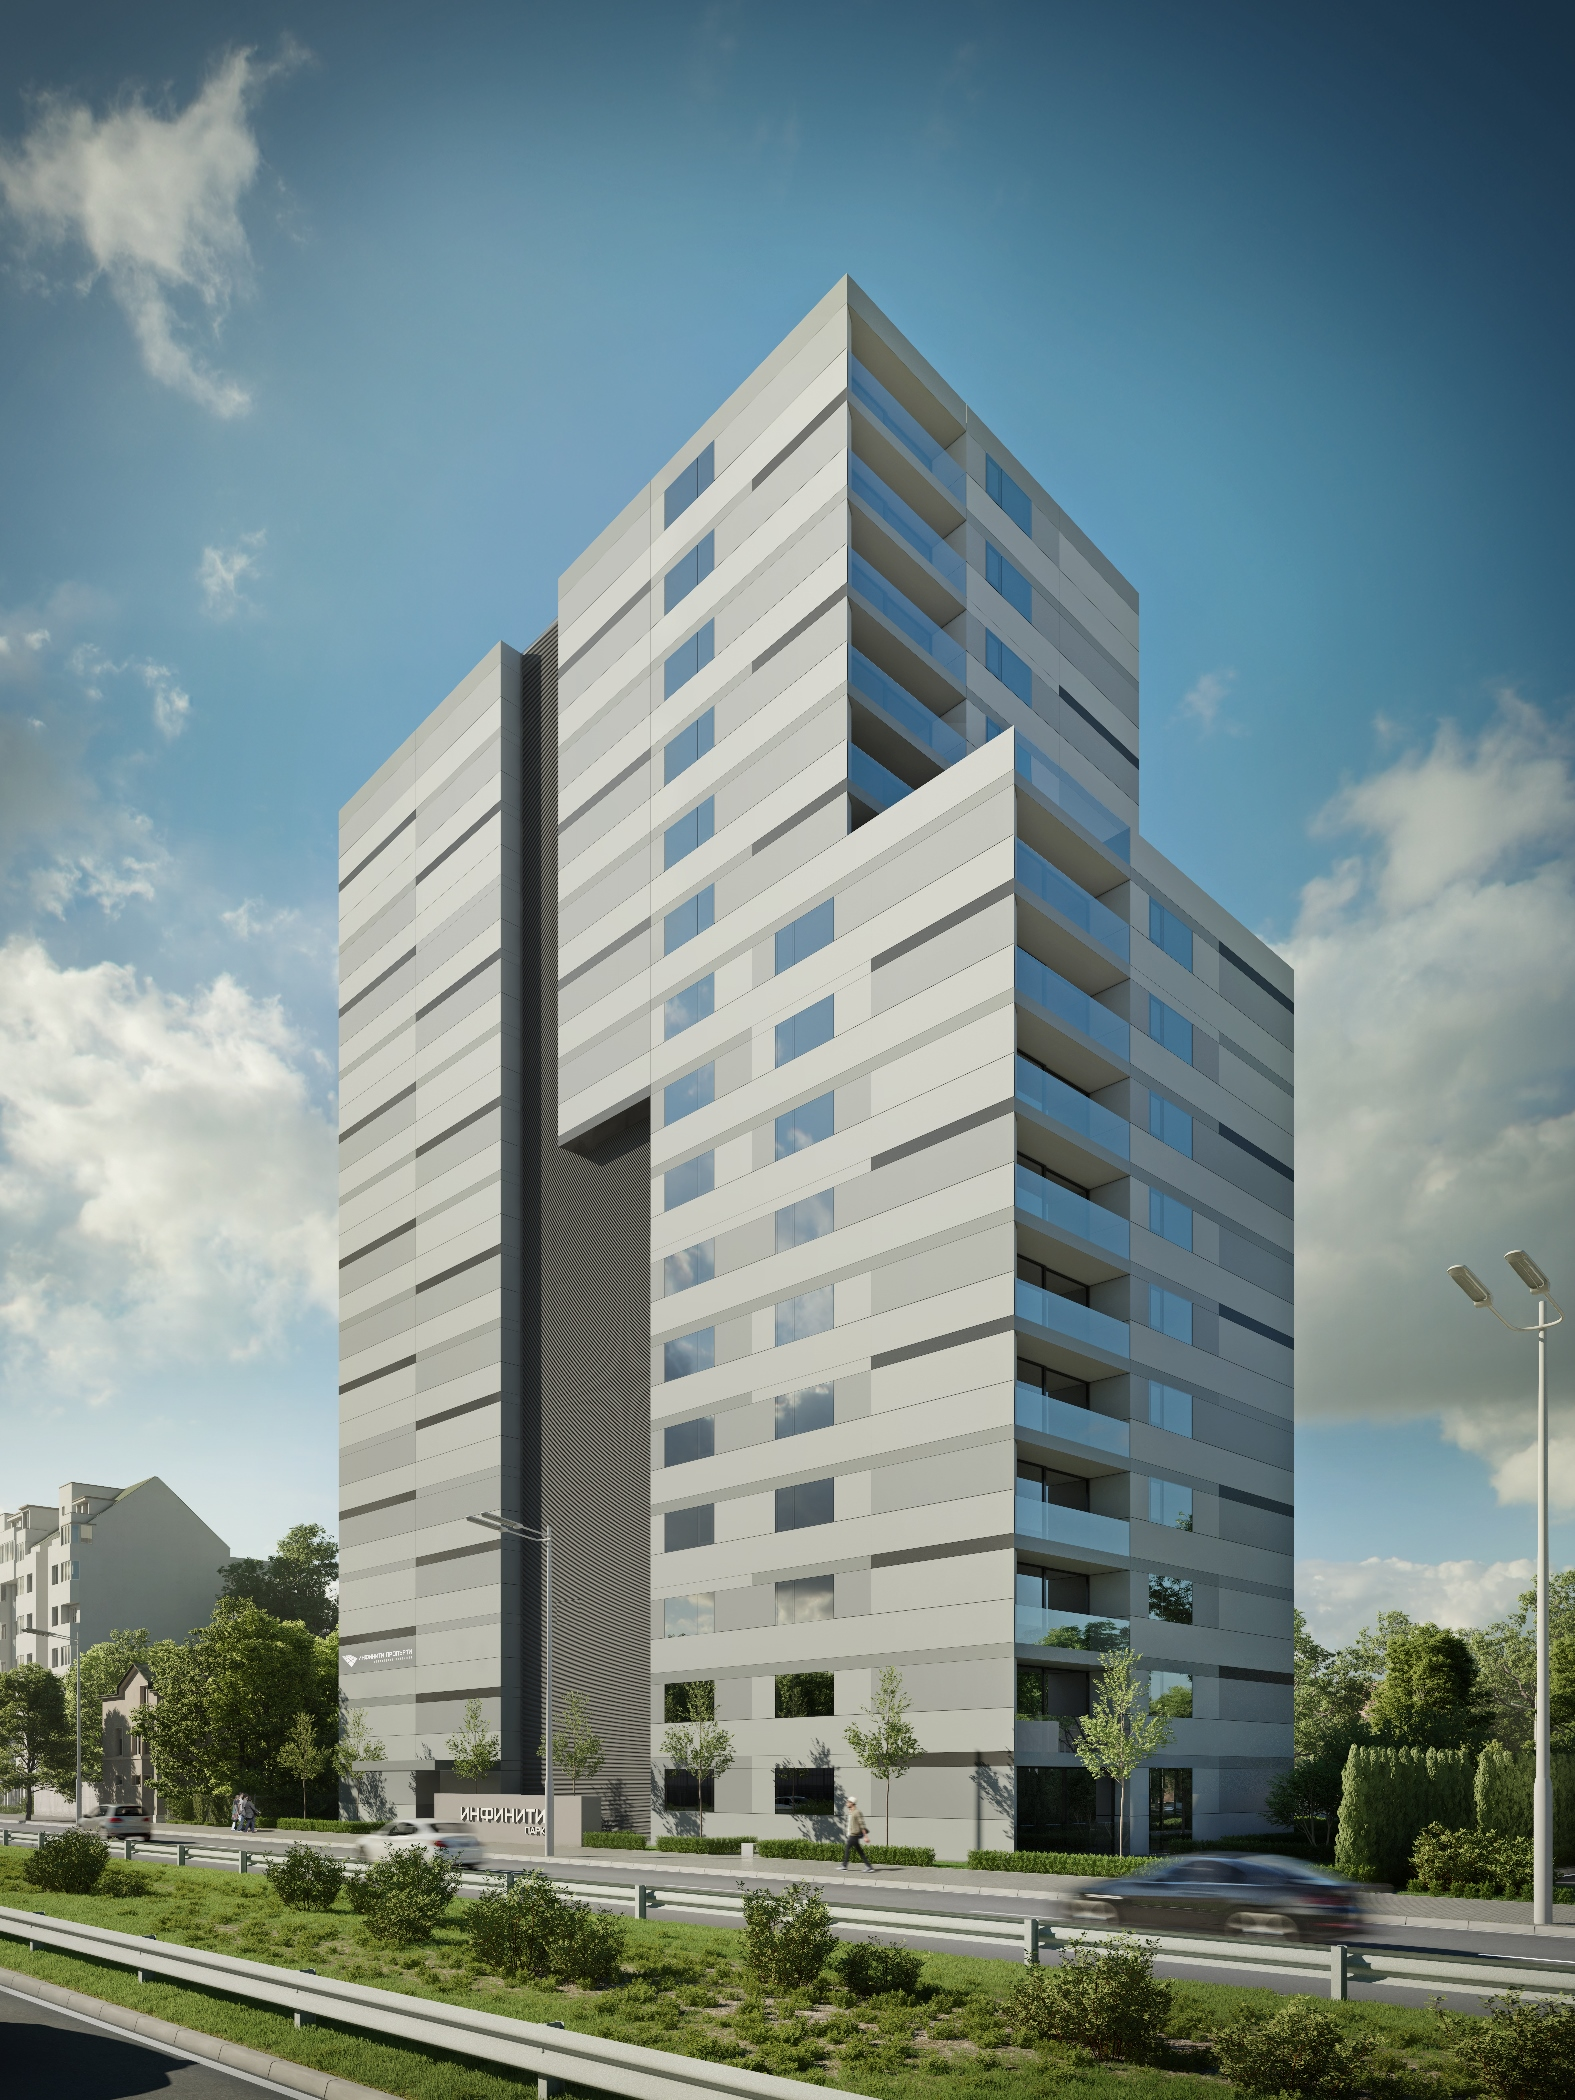 Luxurious Apartment Building In Nyc Marries Industrial: For Sale: Apartment In Luxury Building In Sofia